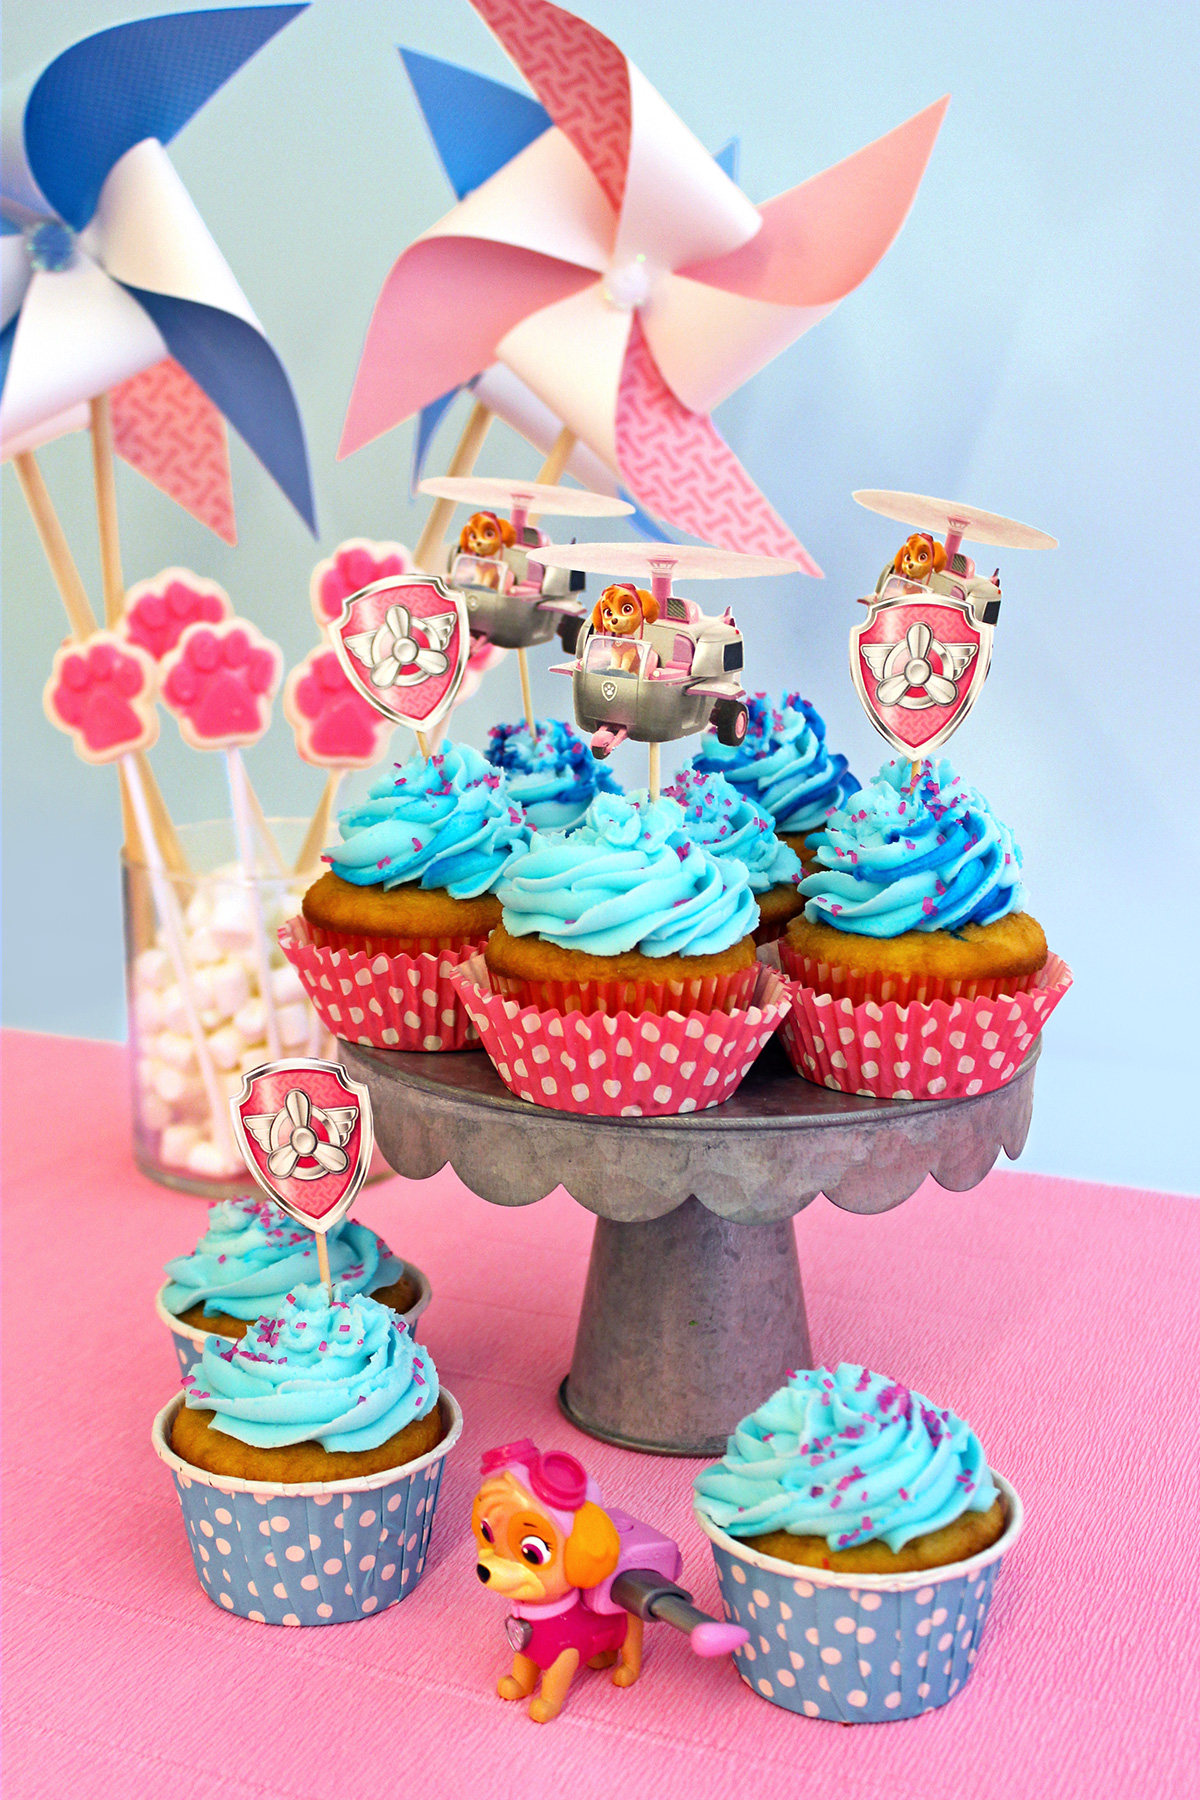 SaveSave To Pinterest PAW Patrol Skye Birthday Party Cupcakes